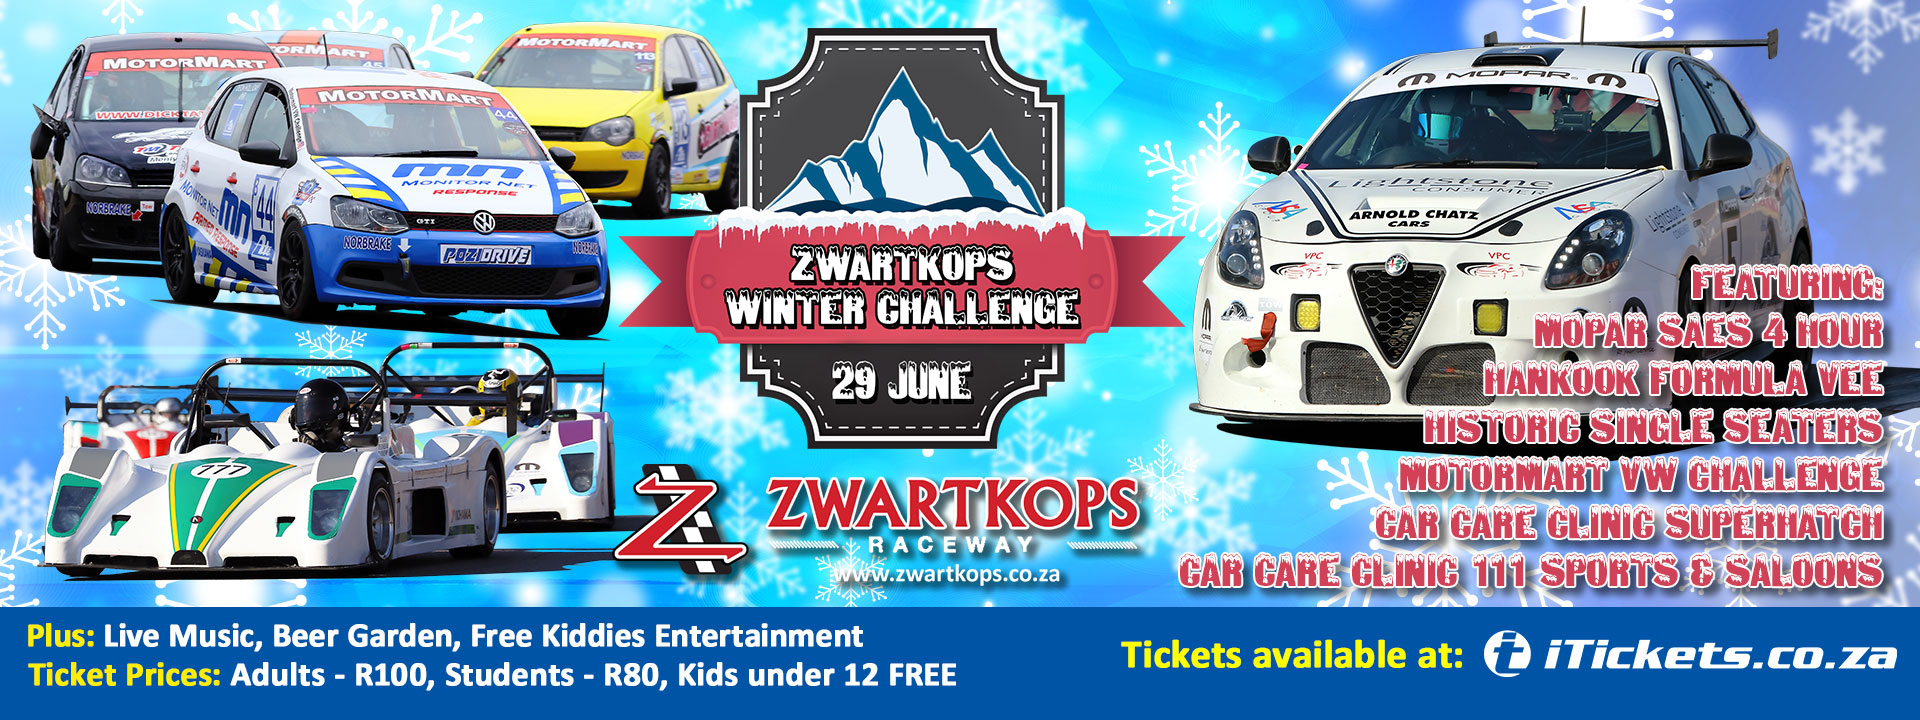 Entries now open for Zwartkops Winter Challenge race on 29 June 2019